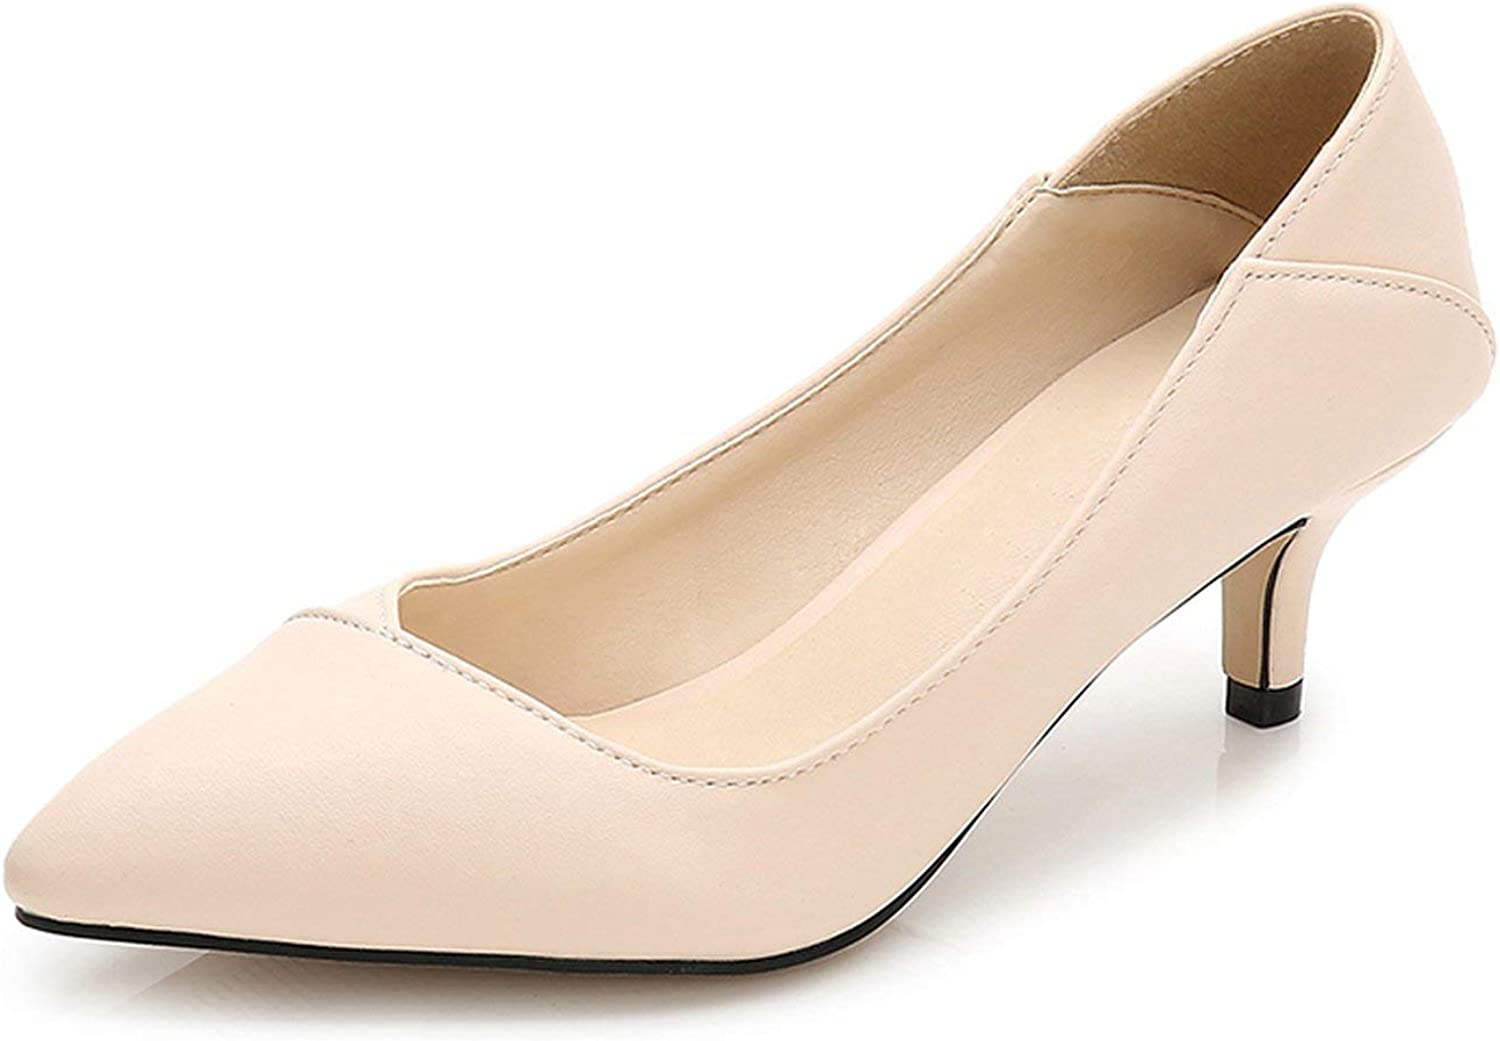 Pointed Toe Women Pumps Leather Office&Career Women shoess shoes Lady